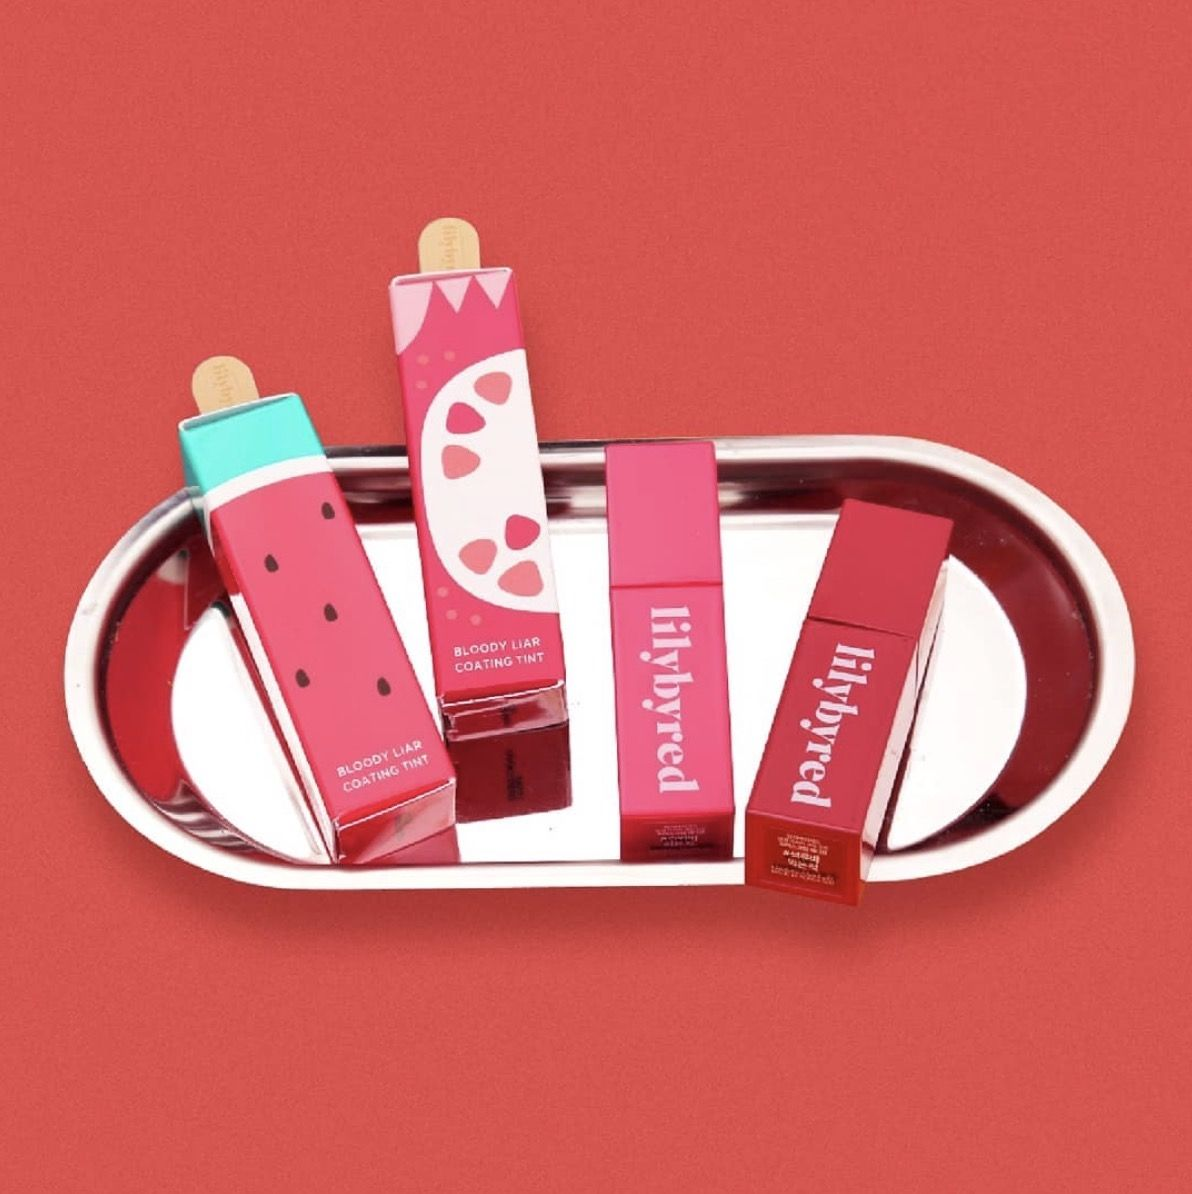 Lilybyred, a cute and trendy Korean makeup brand is